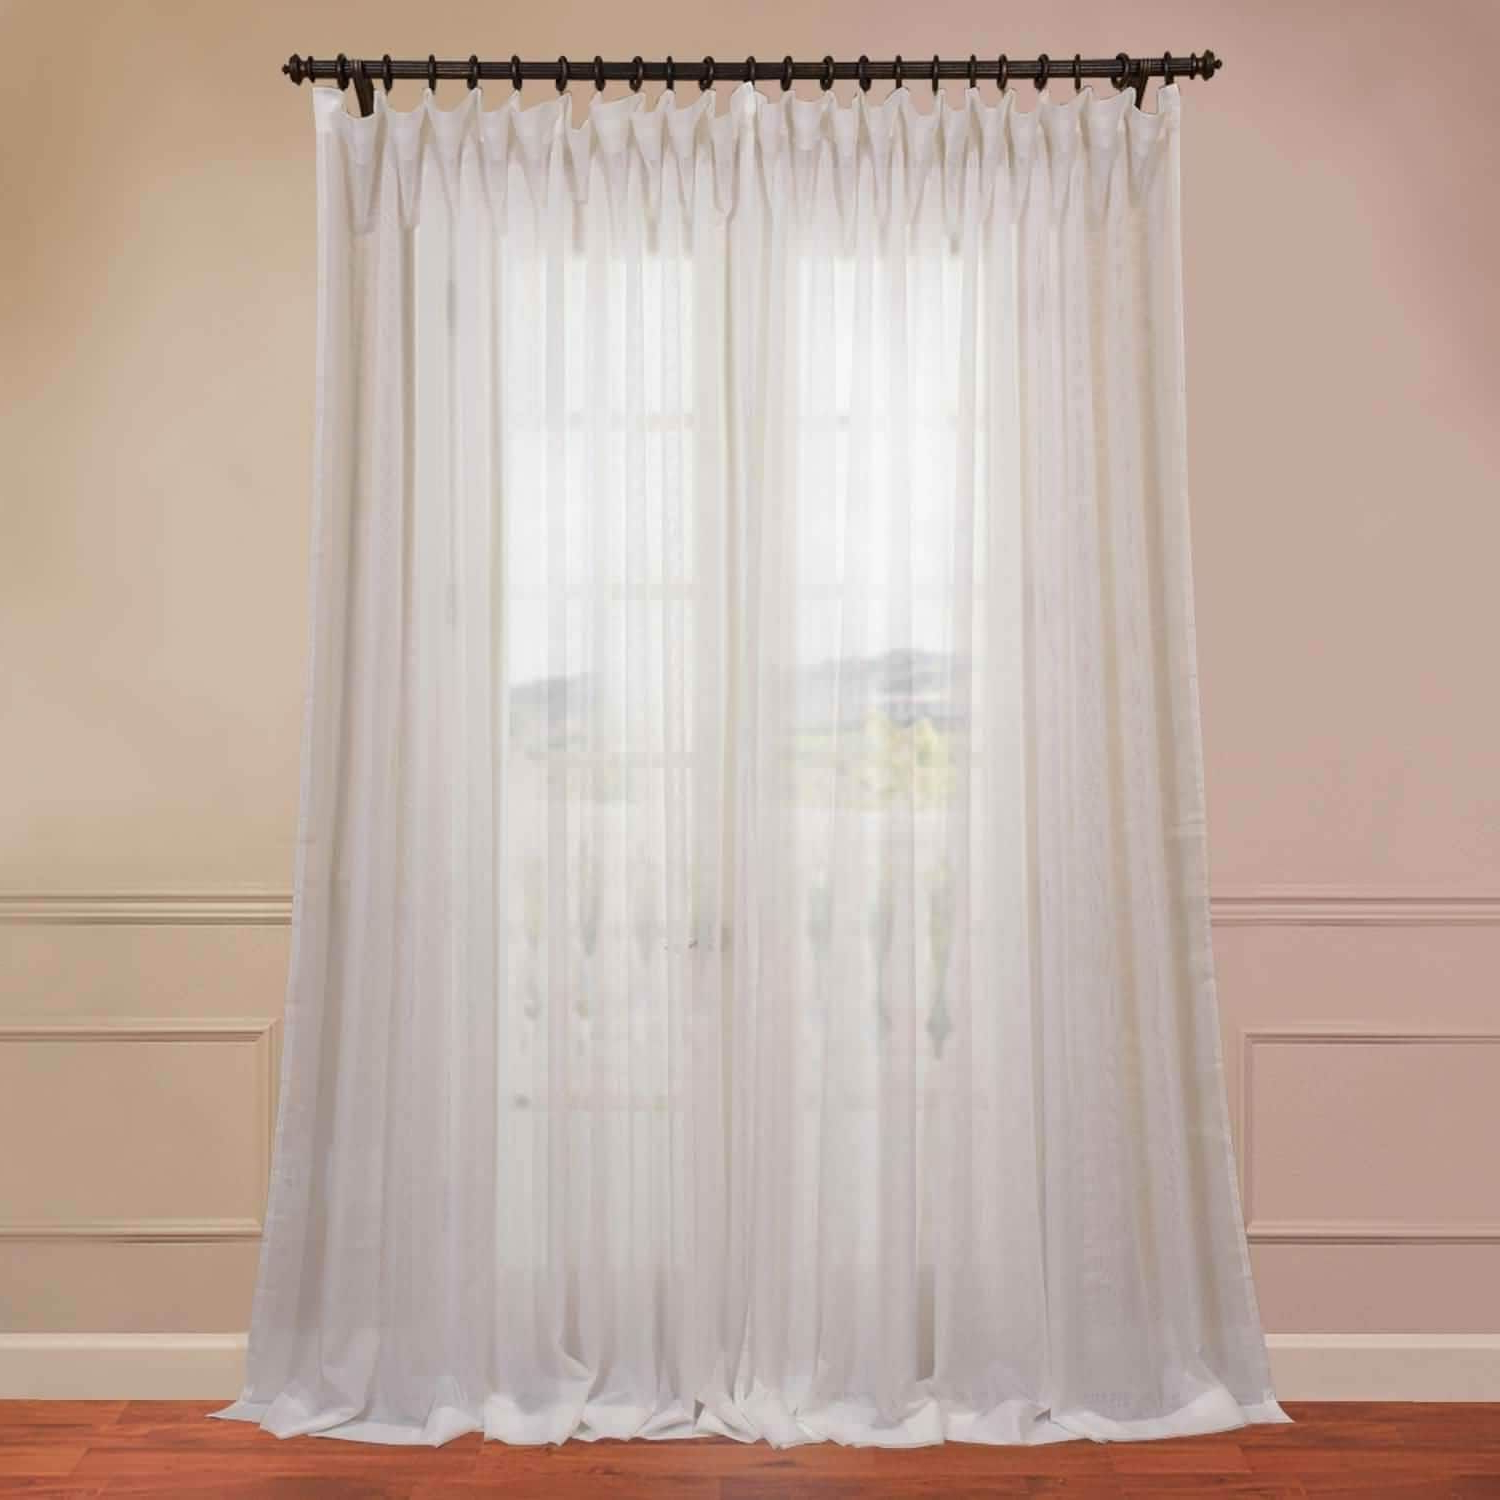 Exclusive Fabrics Signature Off White Extra Wide Double Intended For Latest Signature White Double Layer Sheer Curtain Panels (View 11 of 20)